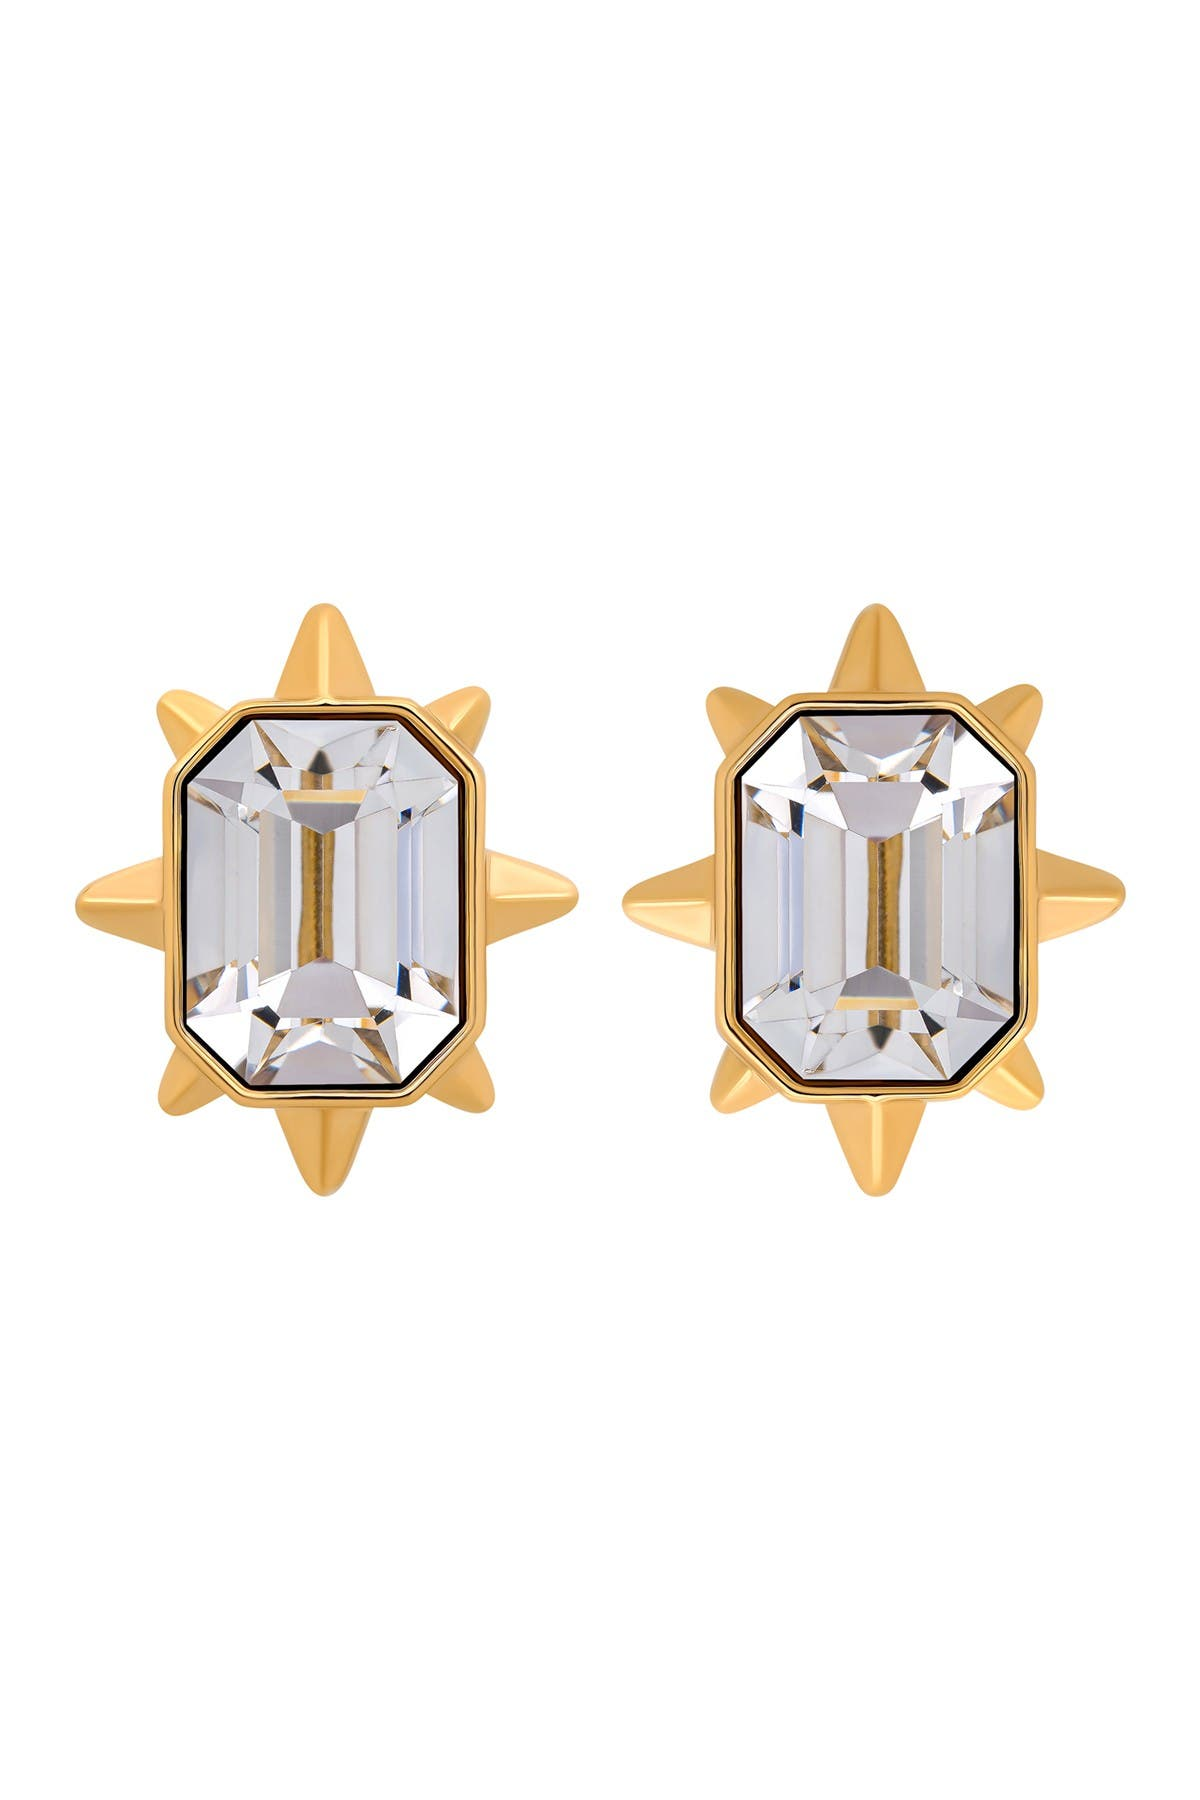 Image of Swarovski Tarot Magic 23K Yellow Gold Plated Clear Swarovski Crystal Stud Earrings